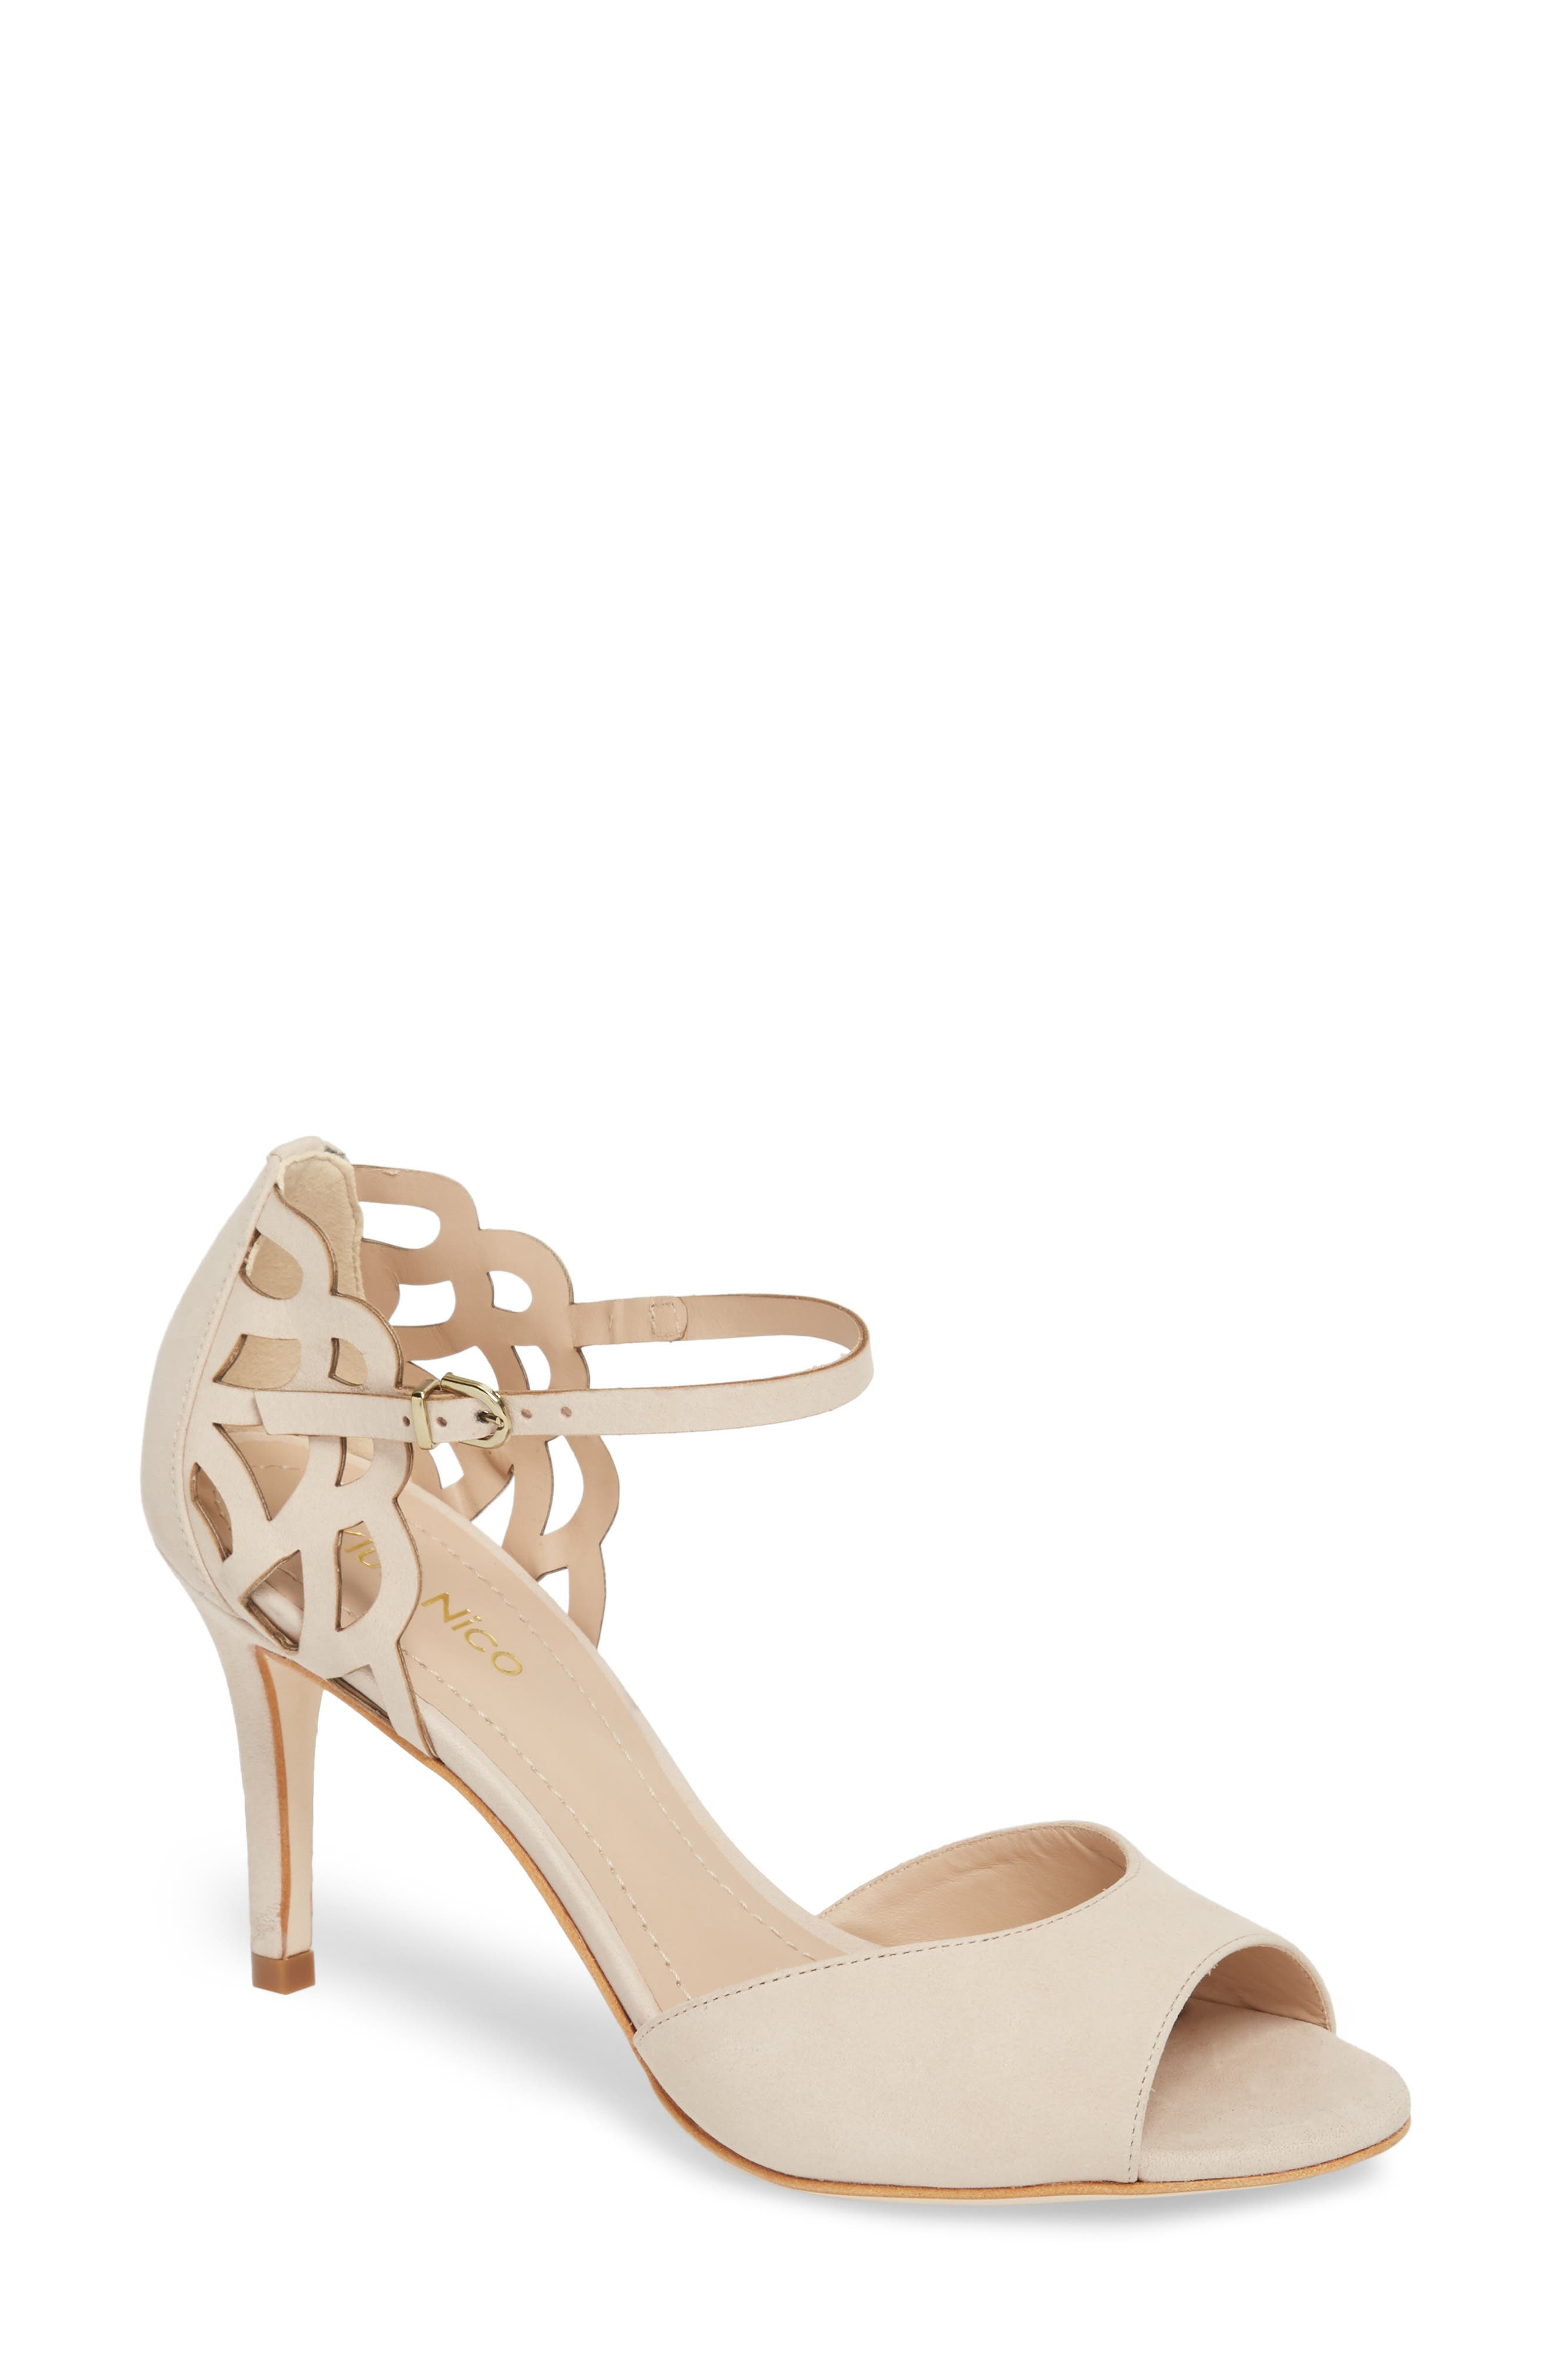 Adalie Sandal,                         Main,                         color, Nude Leather